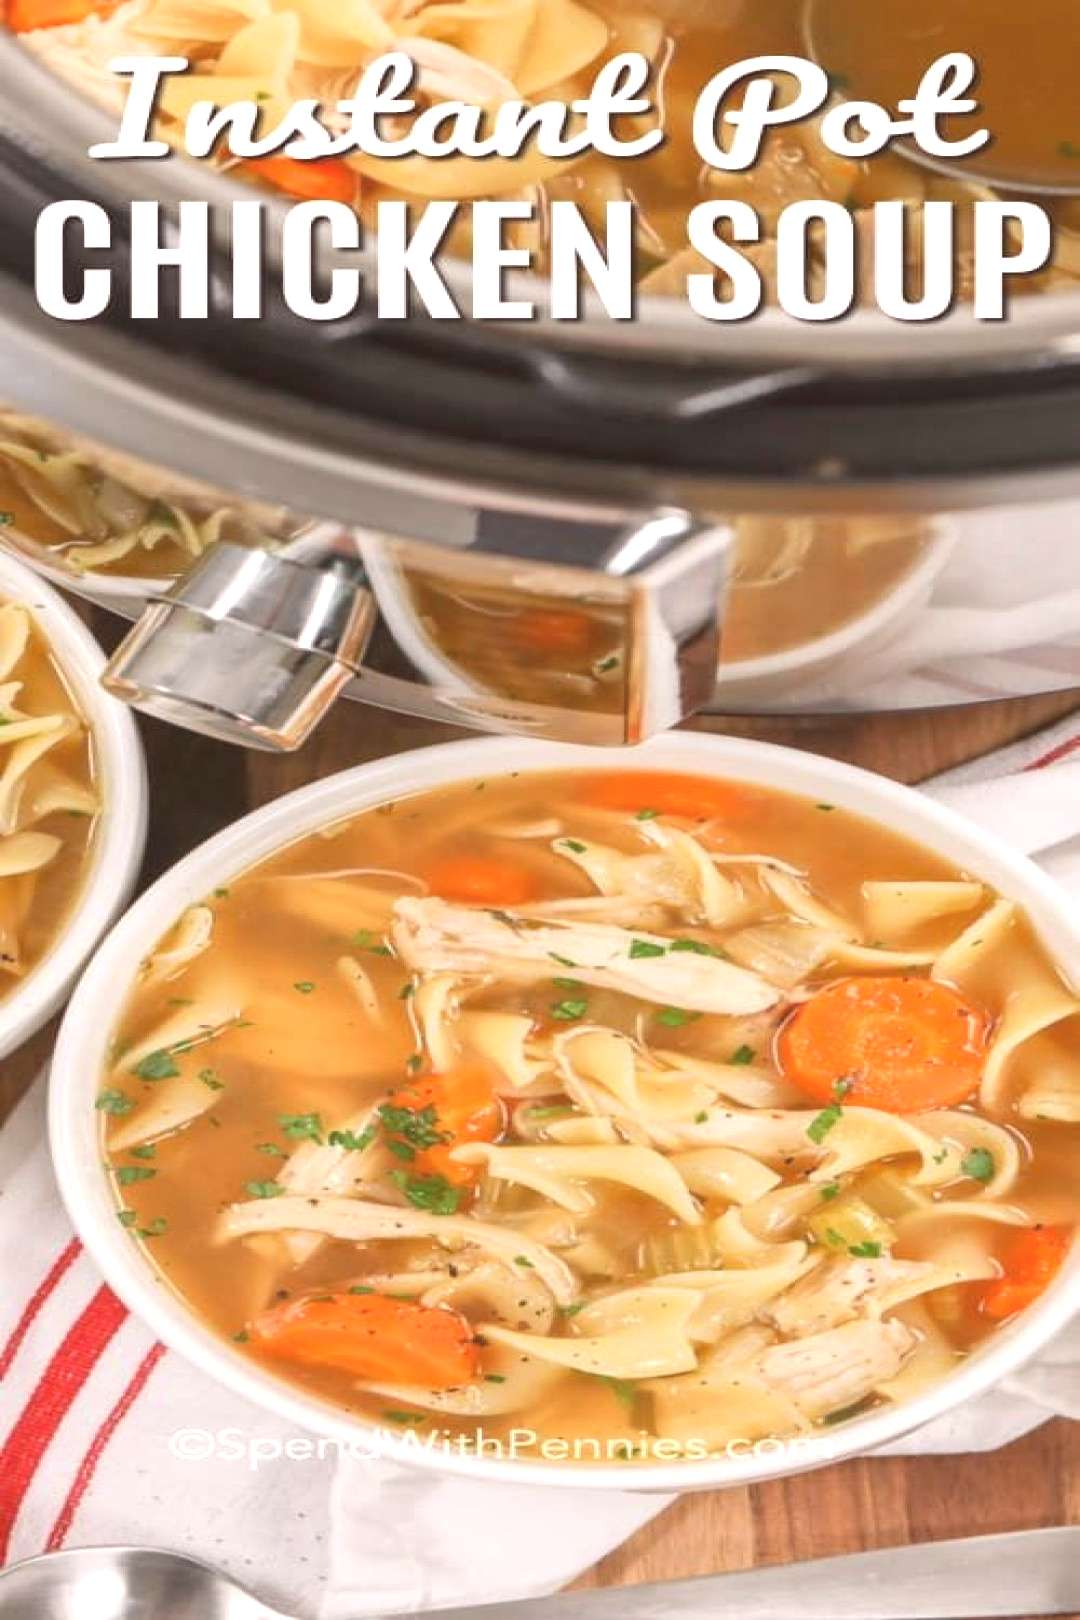 Instant Pot Chicken Noodle Soup - Spend With Pennies - We absolutely love this Instant Pot chicken